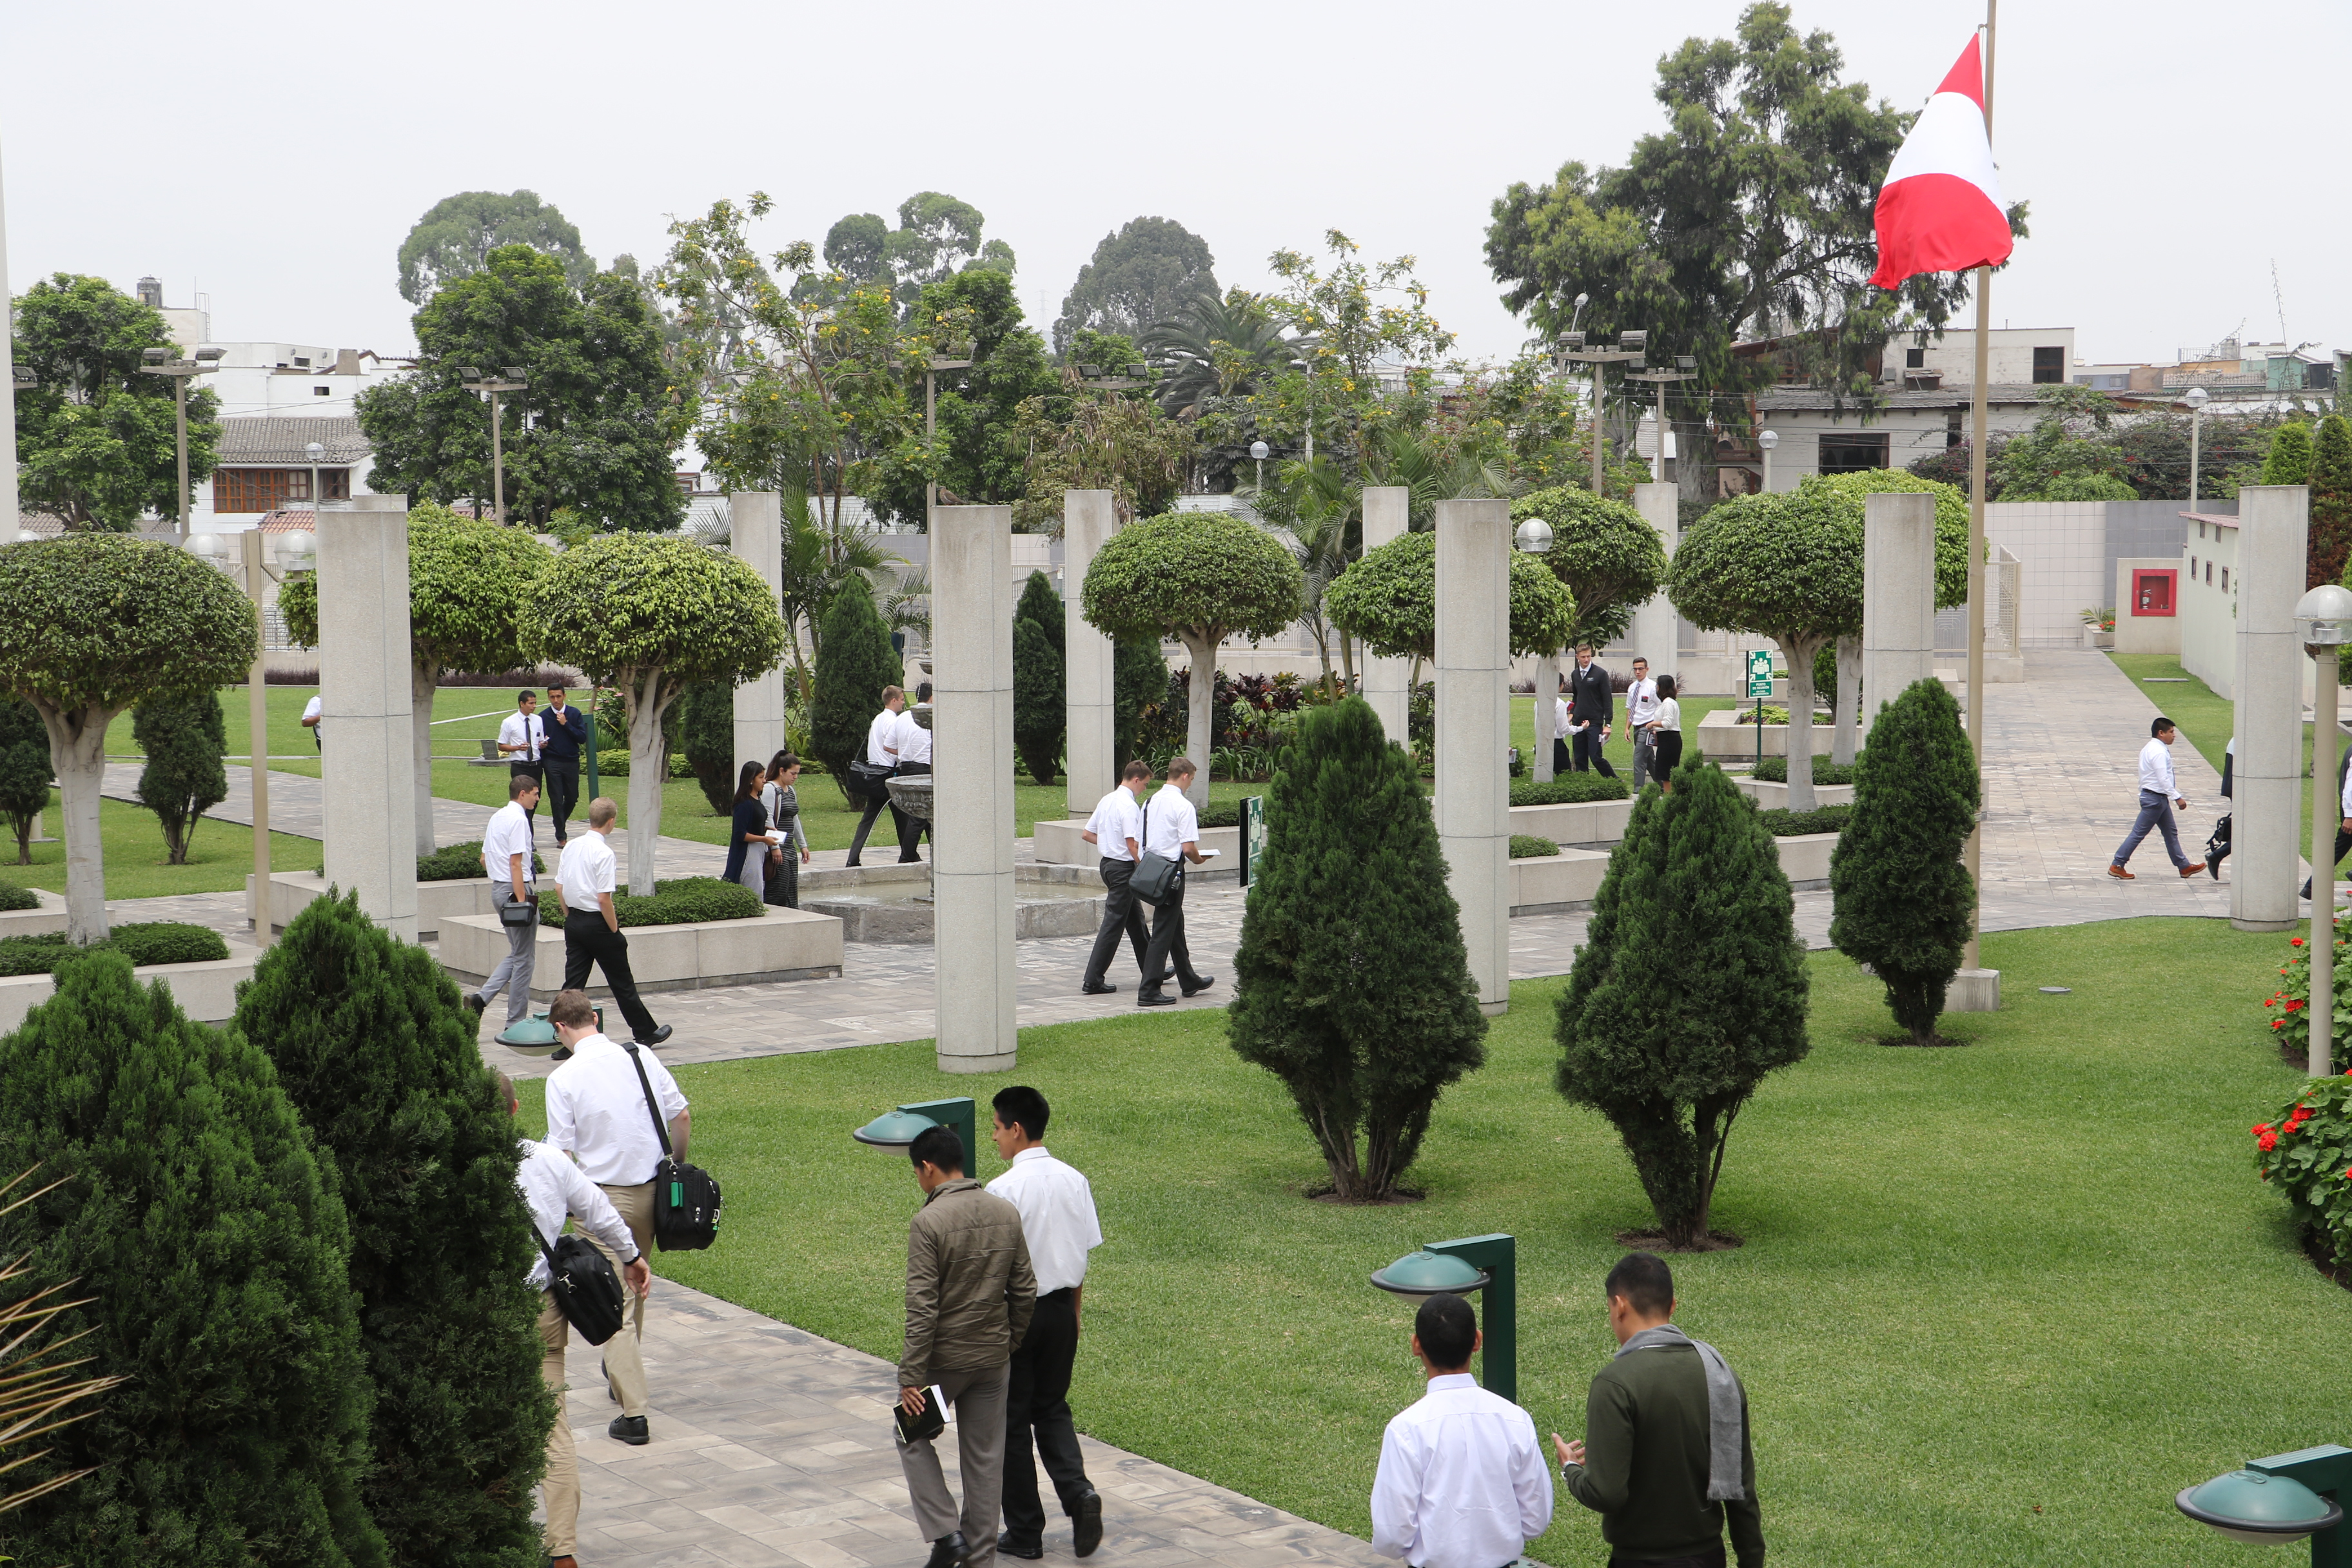 Missionaries walk across the grounds of Peru Missionary Training Center on Oct. 19, 2018.